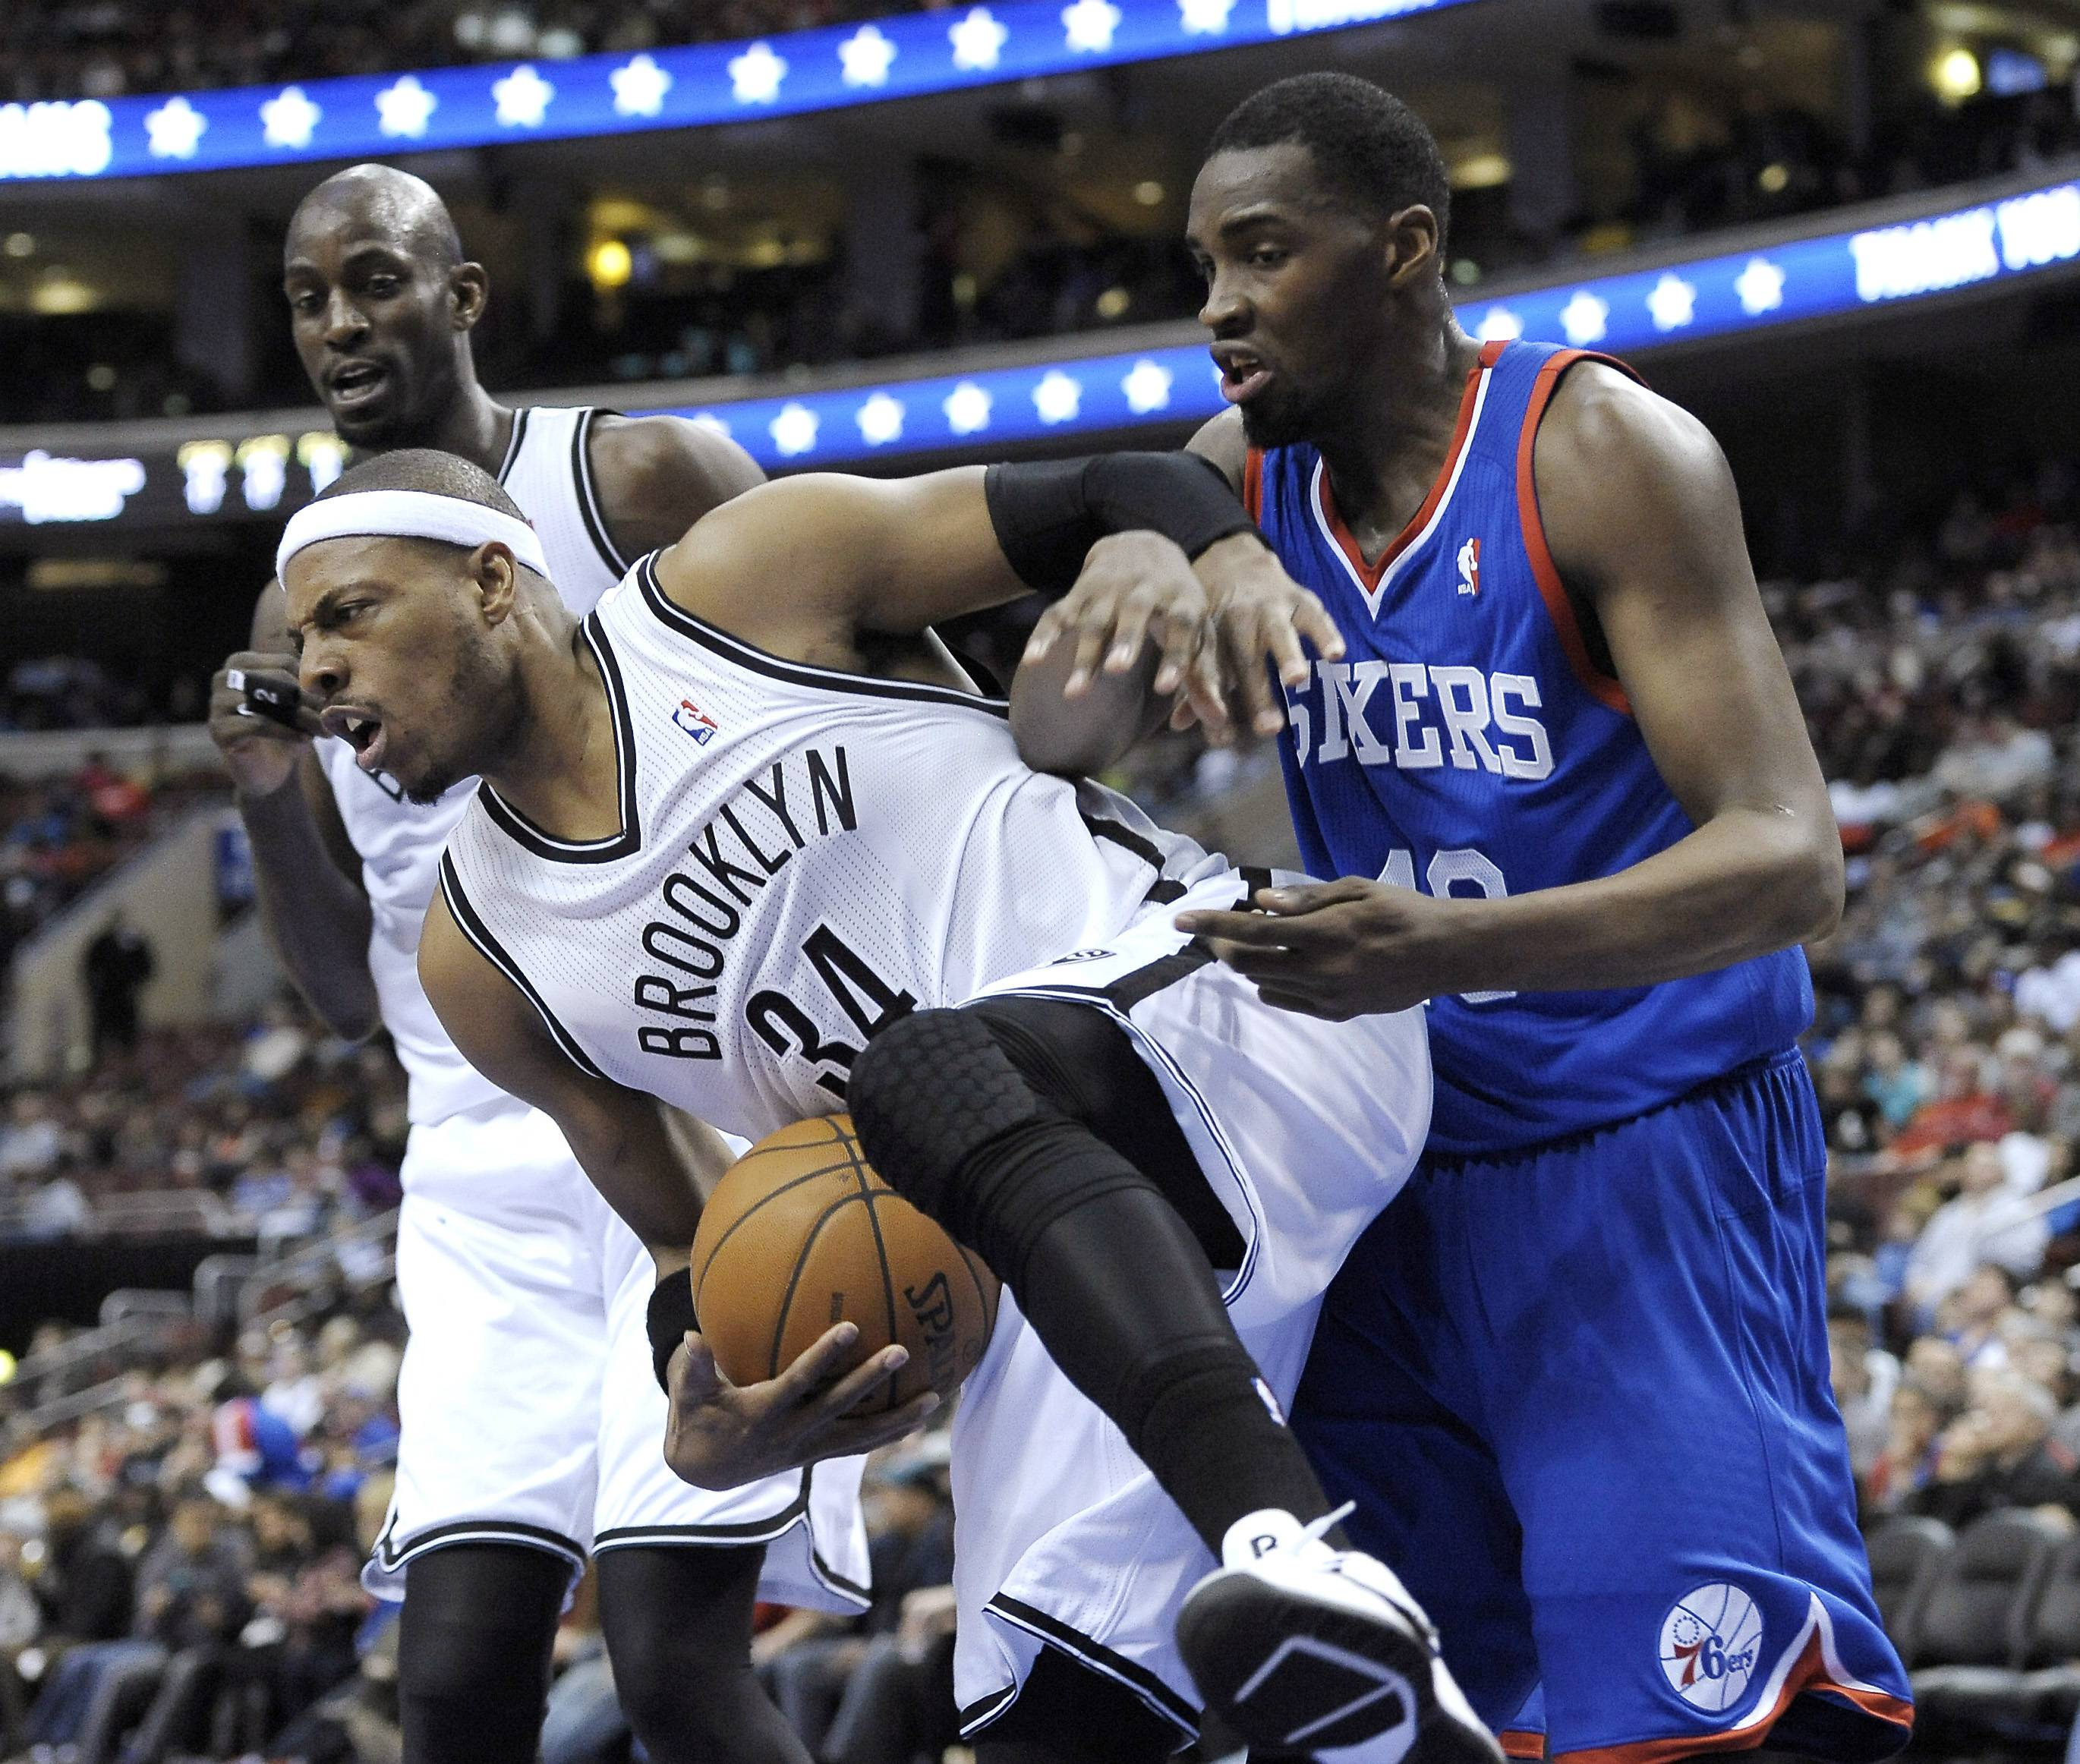 Brooklyn's Paul Pierce steals the ball from Philadelphia's Jarvis Varnado on Saturday. If the Bulls face Brooklyn in the playoffs, Pierce may be guarding Joakim Noah due to the team's three-guard starting lineup.